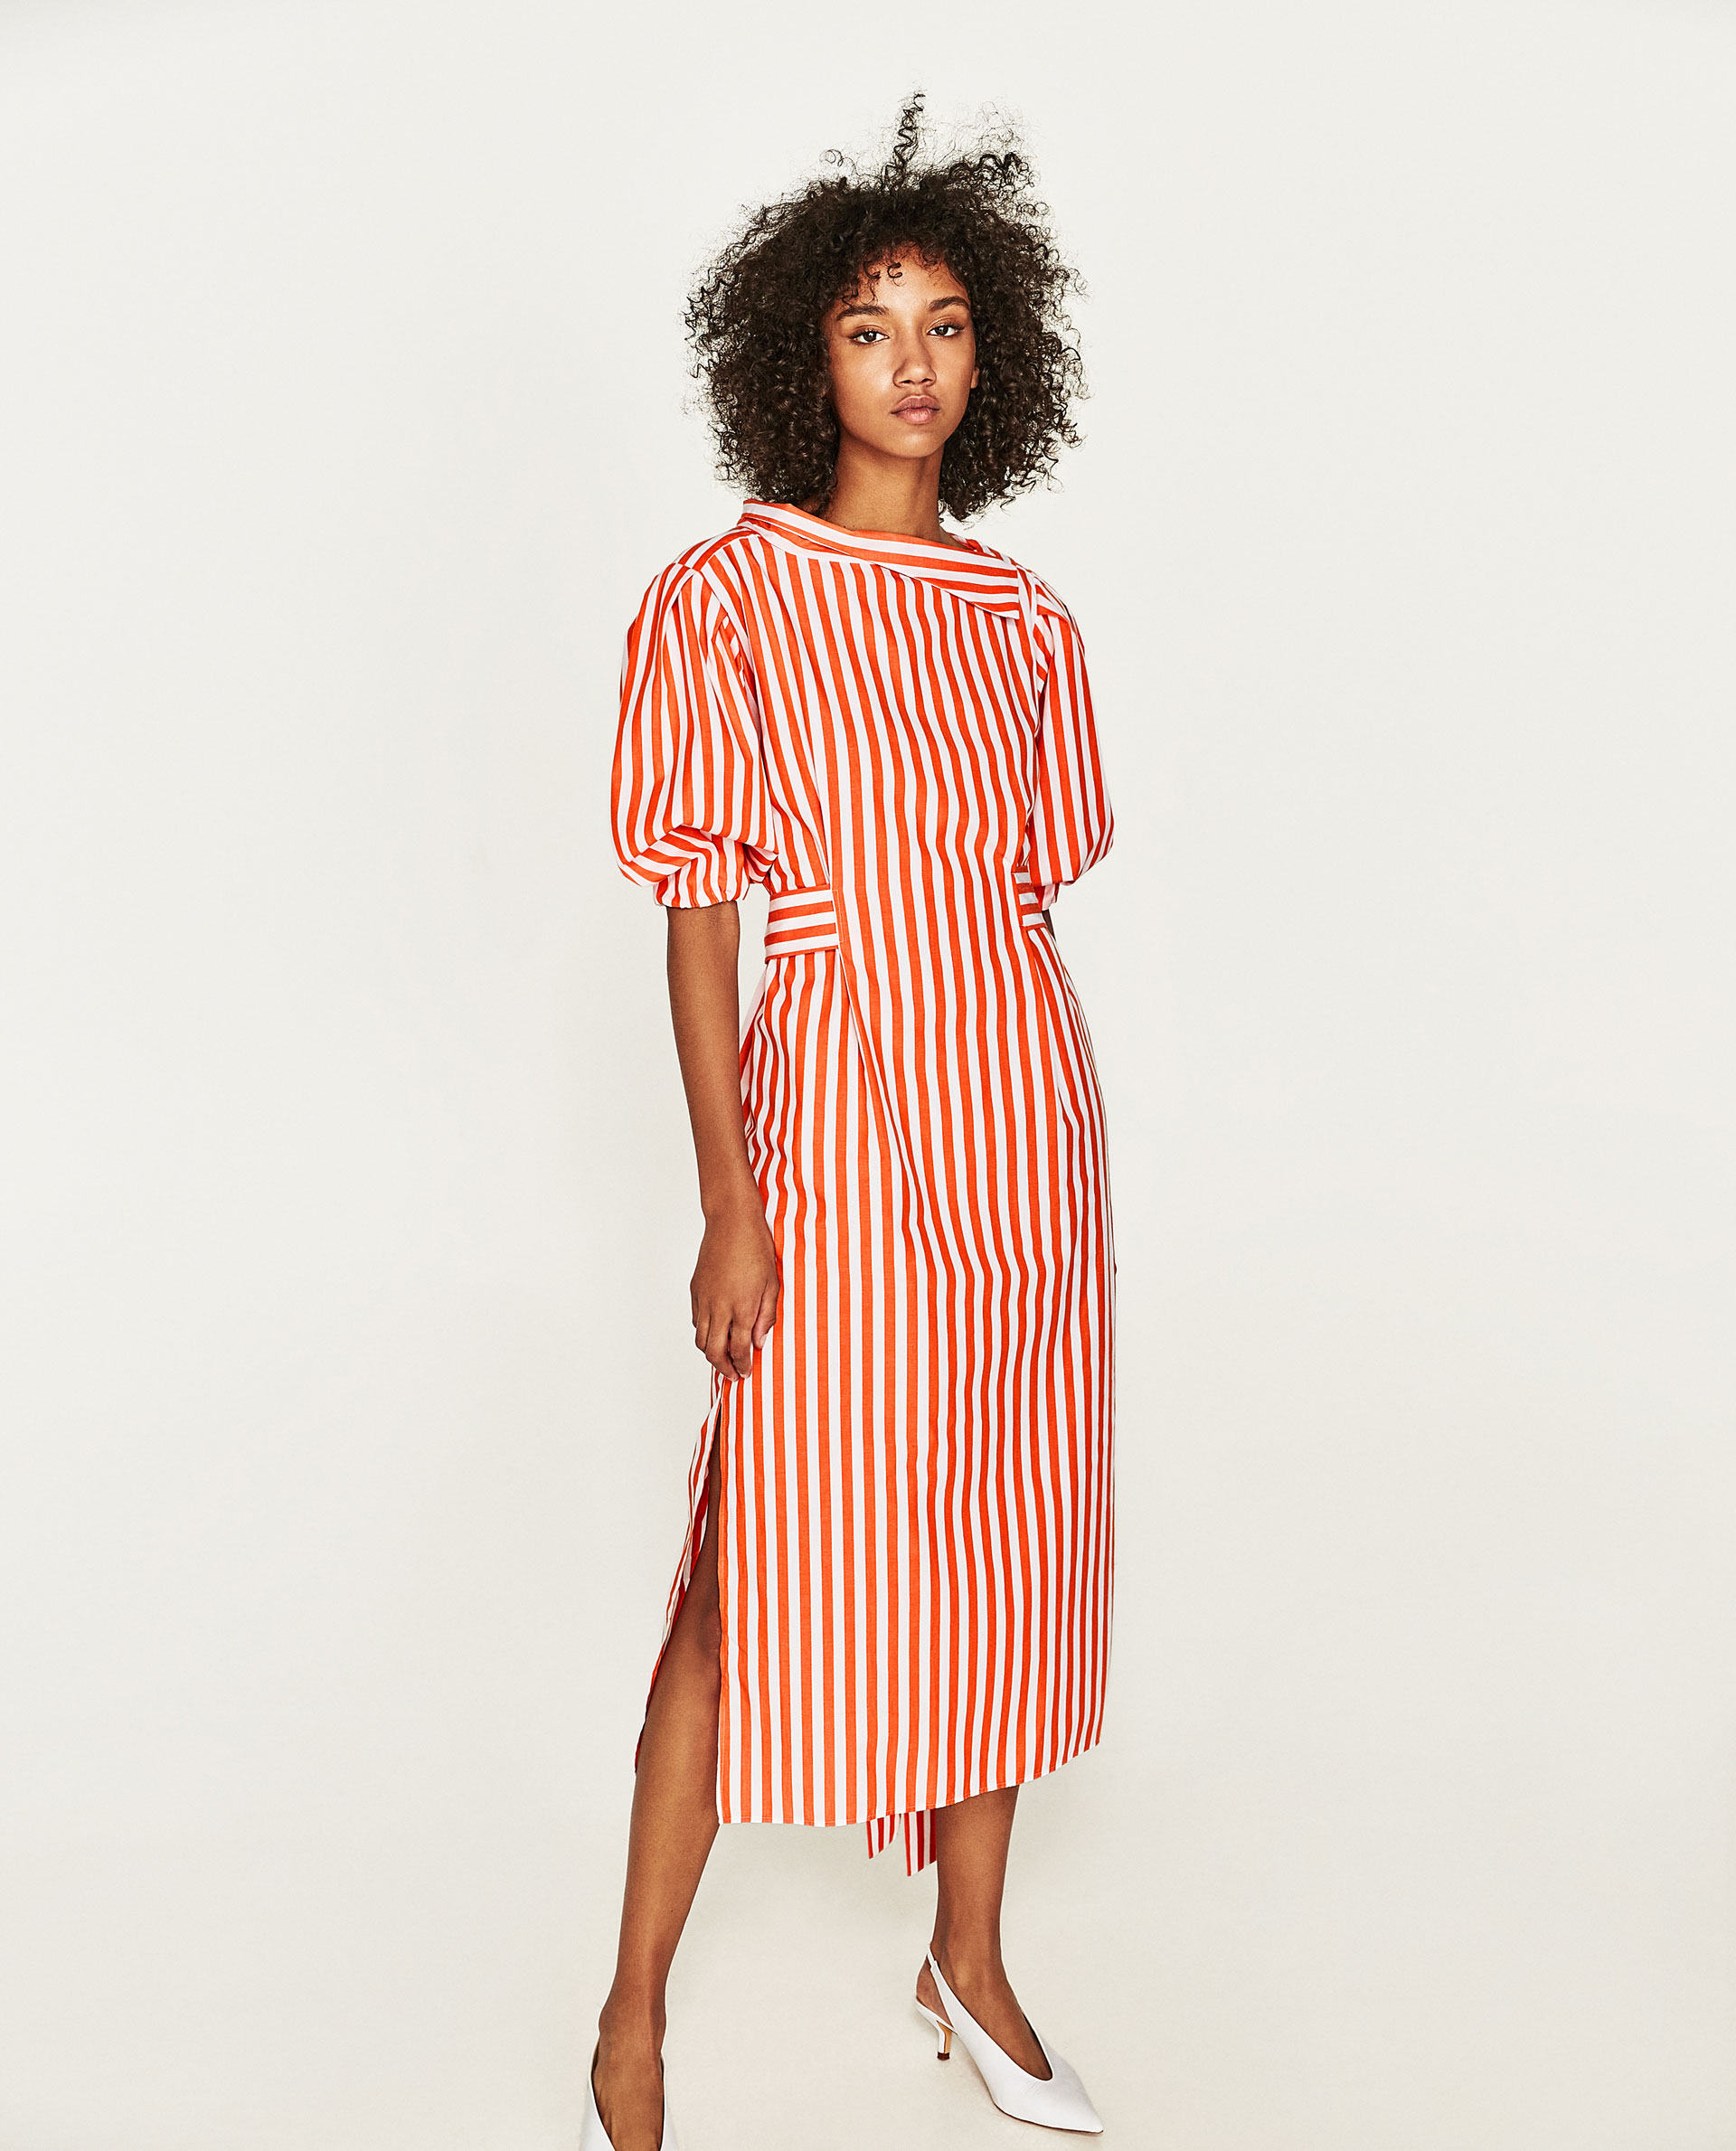 81d50edc149 15 Cute Summer Dresses You Can Legit Wear to Work - theFashionSpot